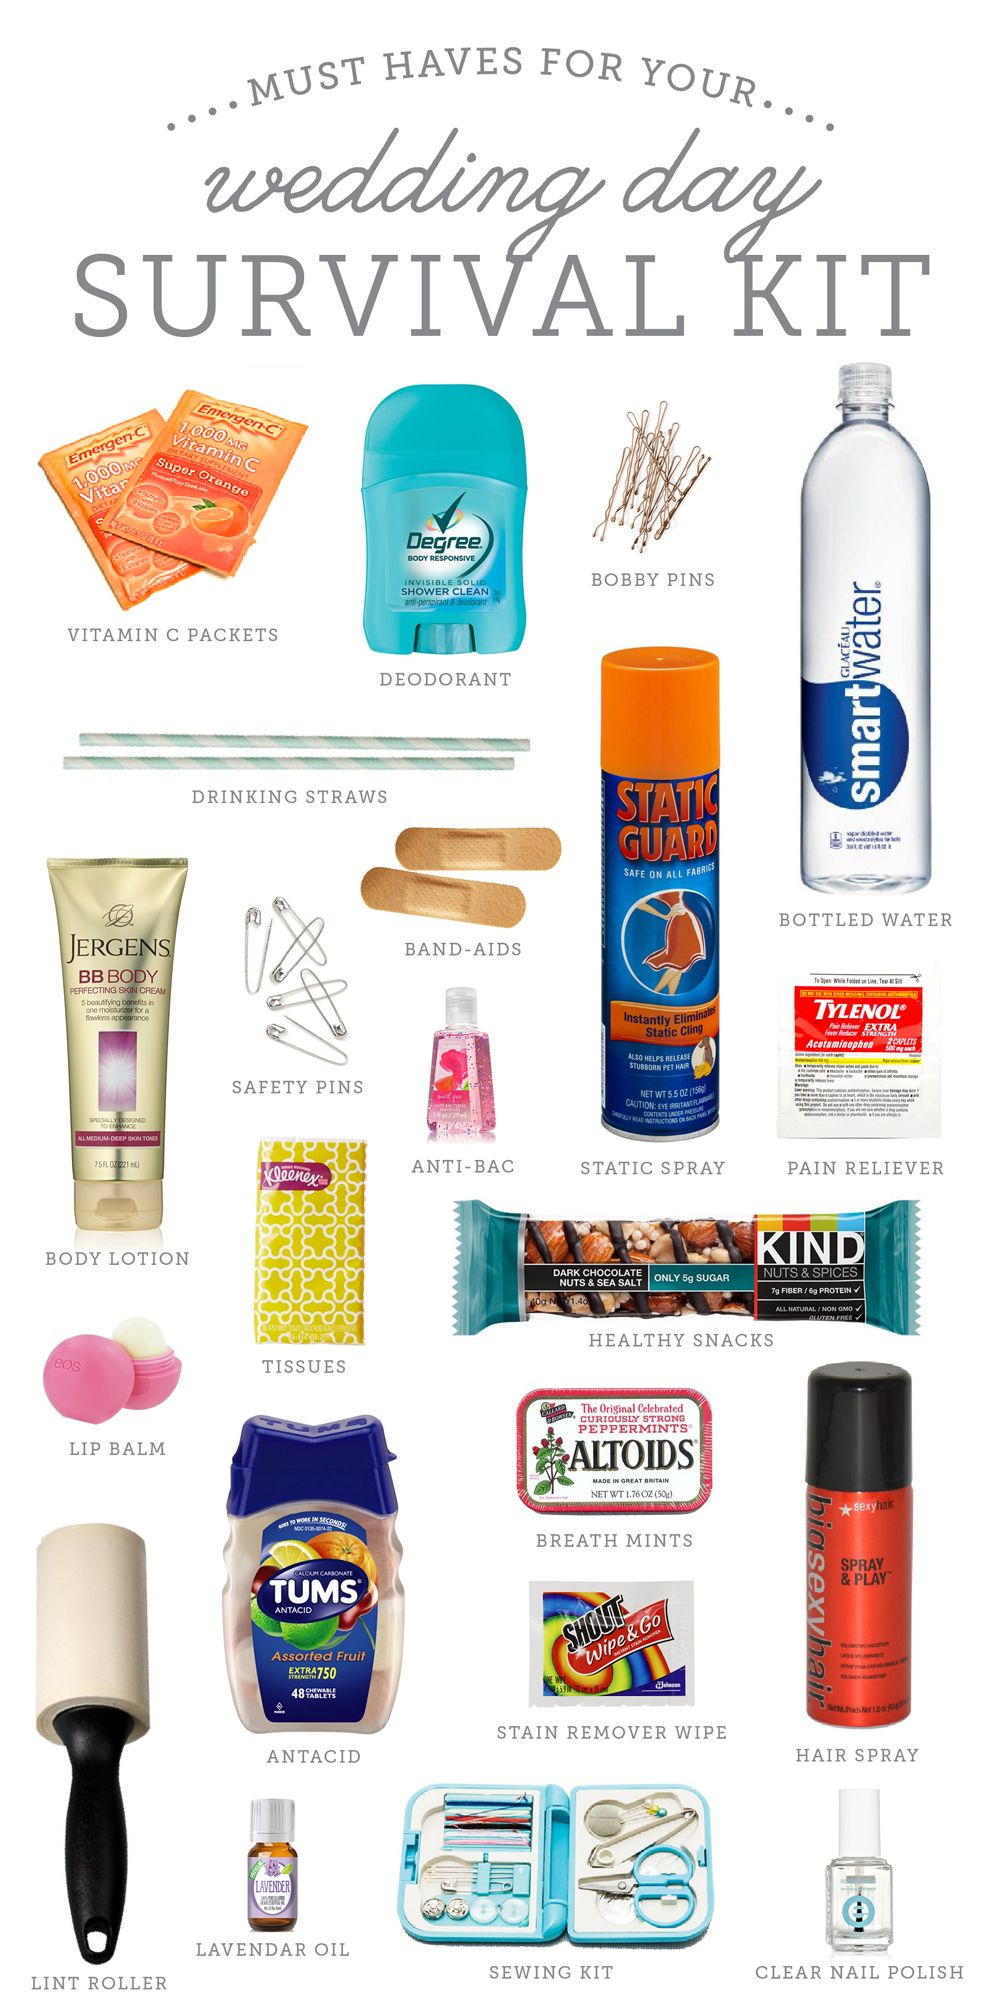 Must haves for a DIY Wedding Day Survival Kit - great idea!! | The Budget Savvy Bride